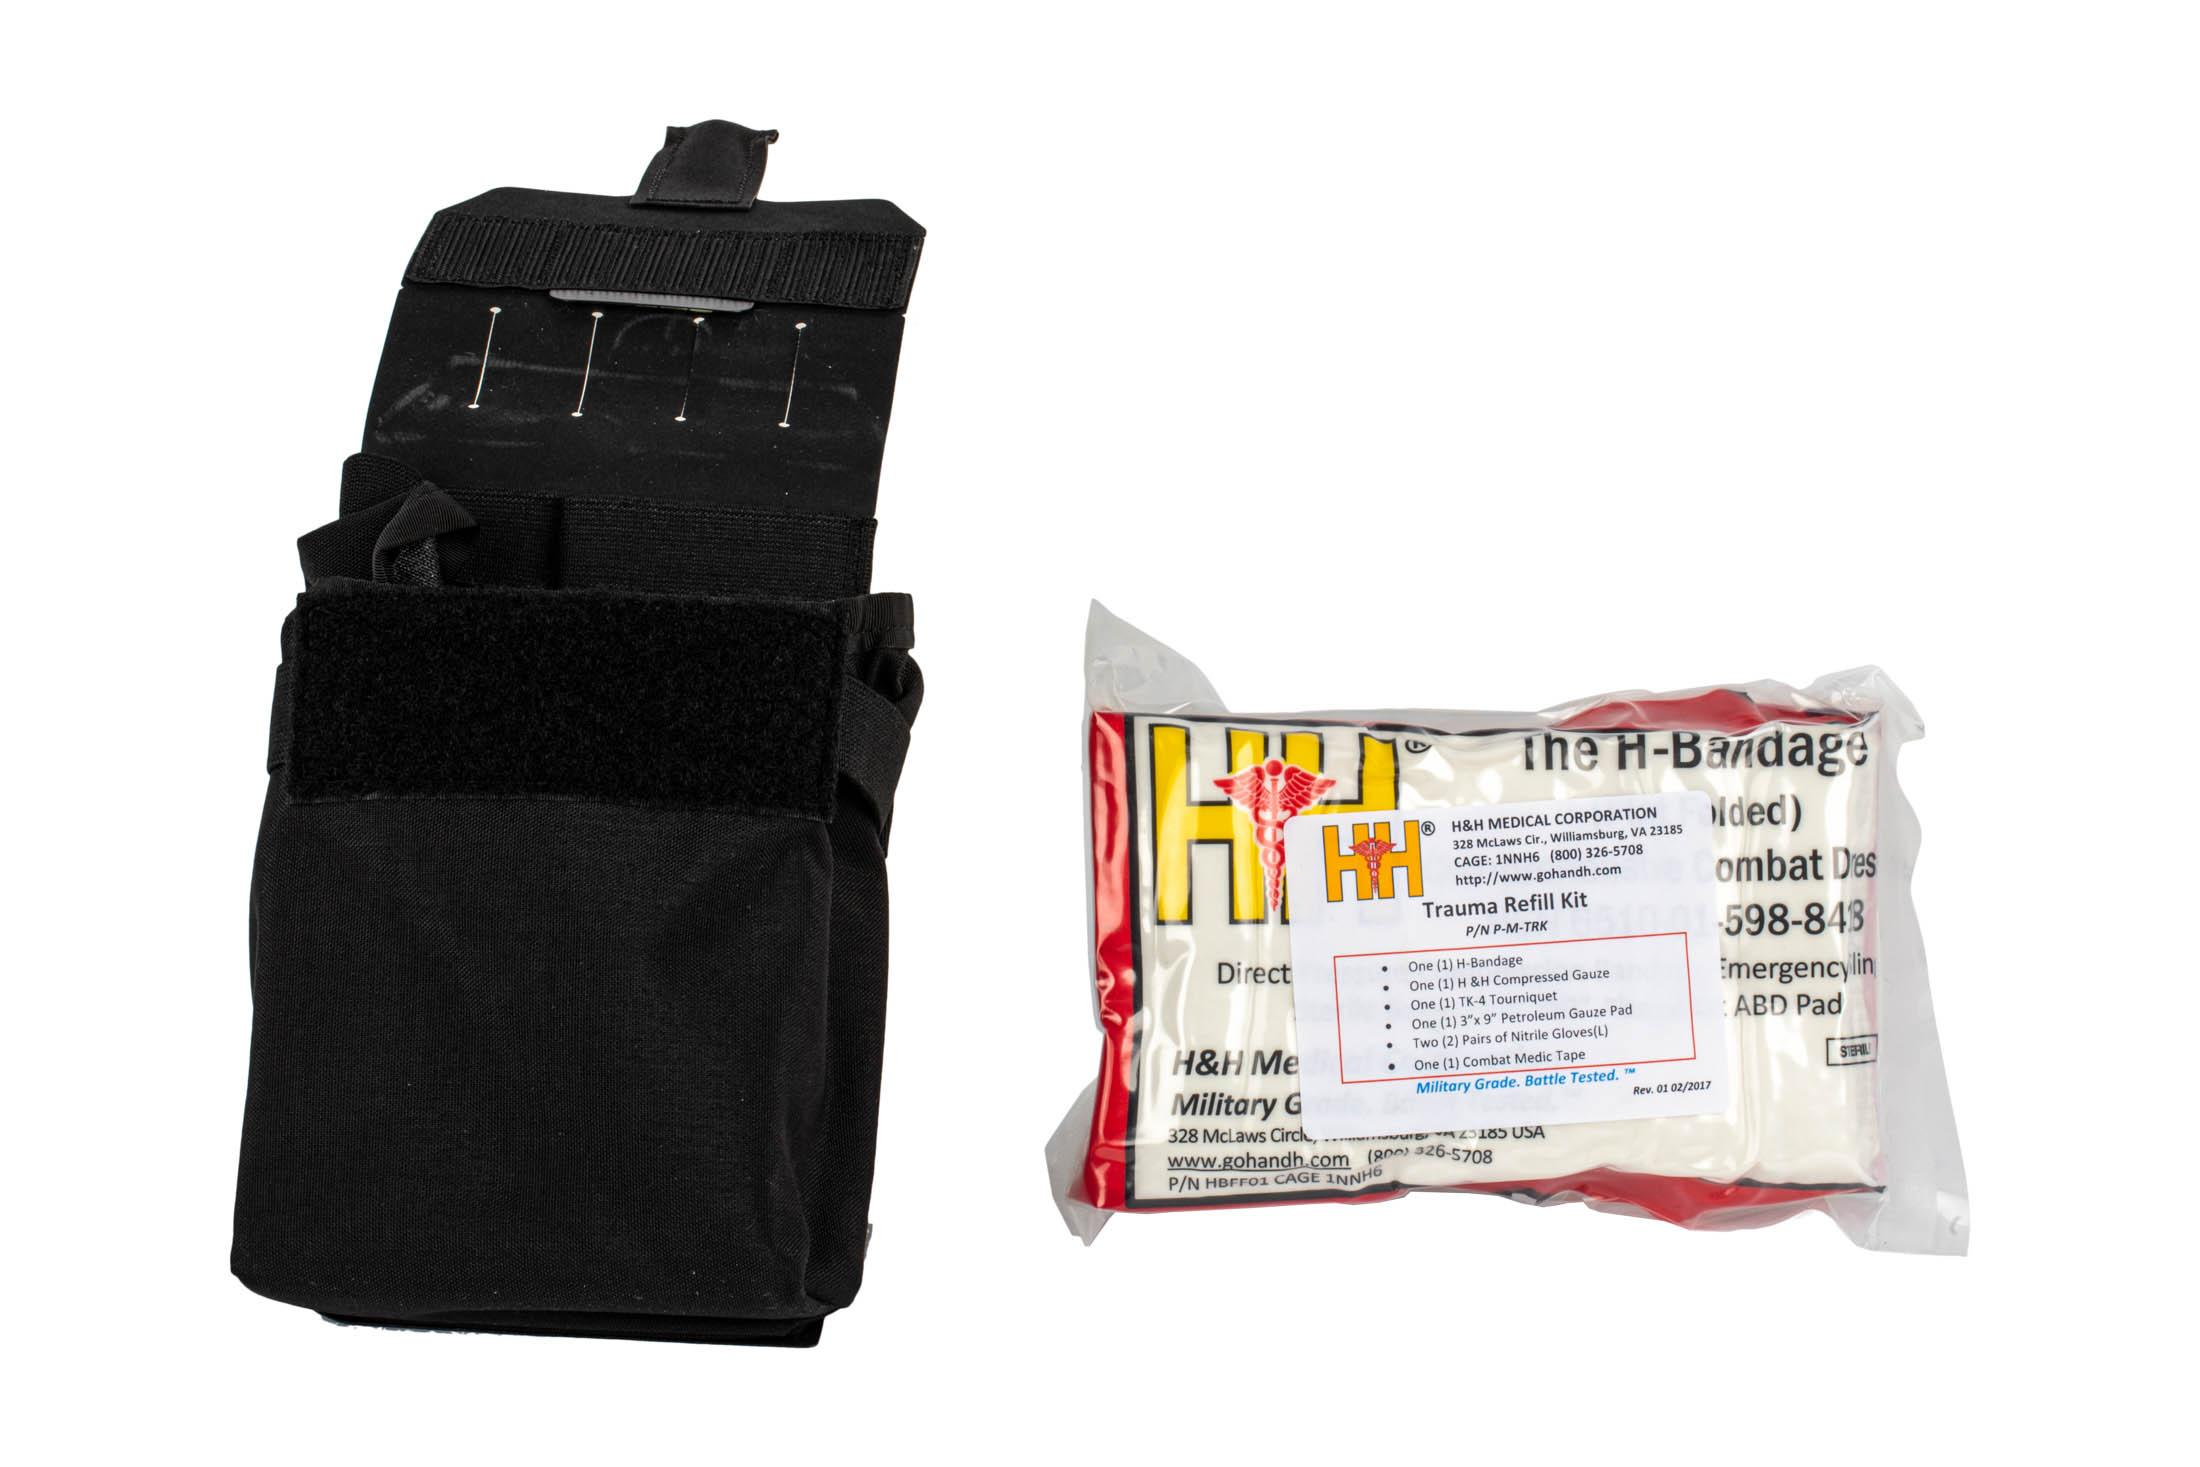 The Blue Force Gear Trauma Kit Now comes with the Trauma refill kit full of supplies